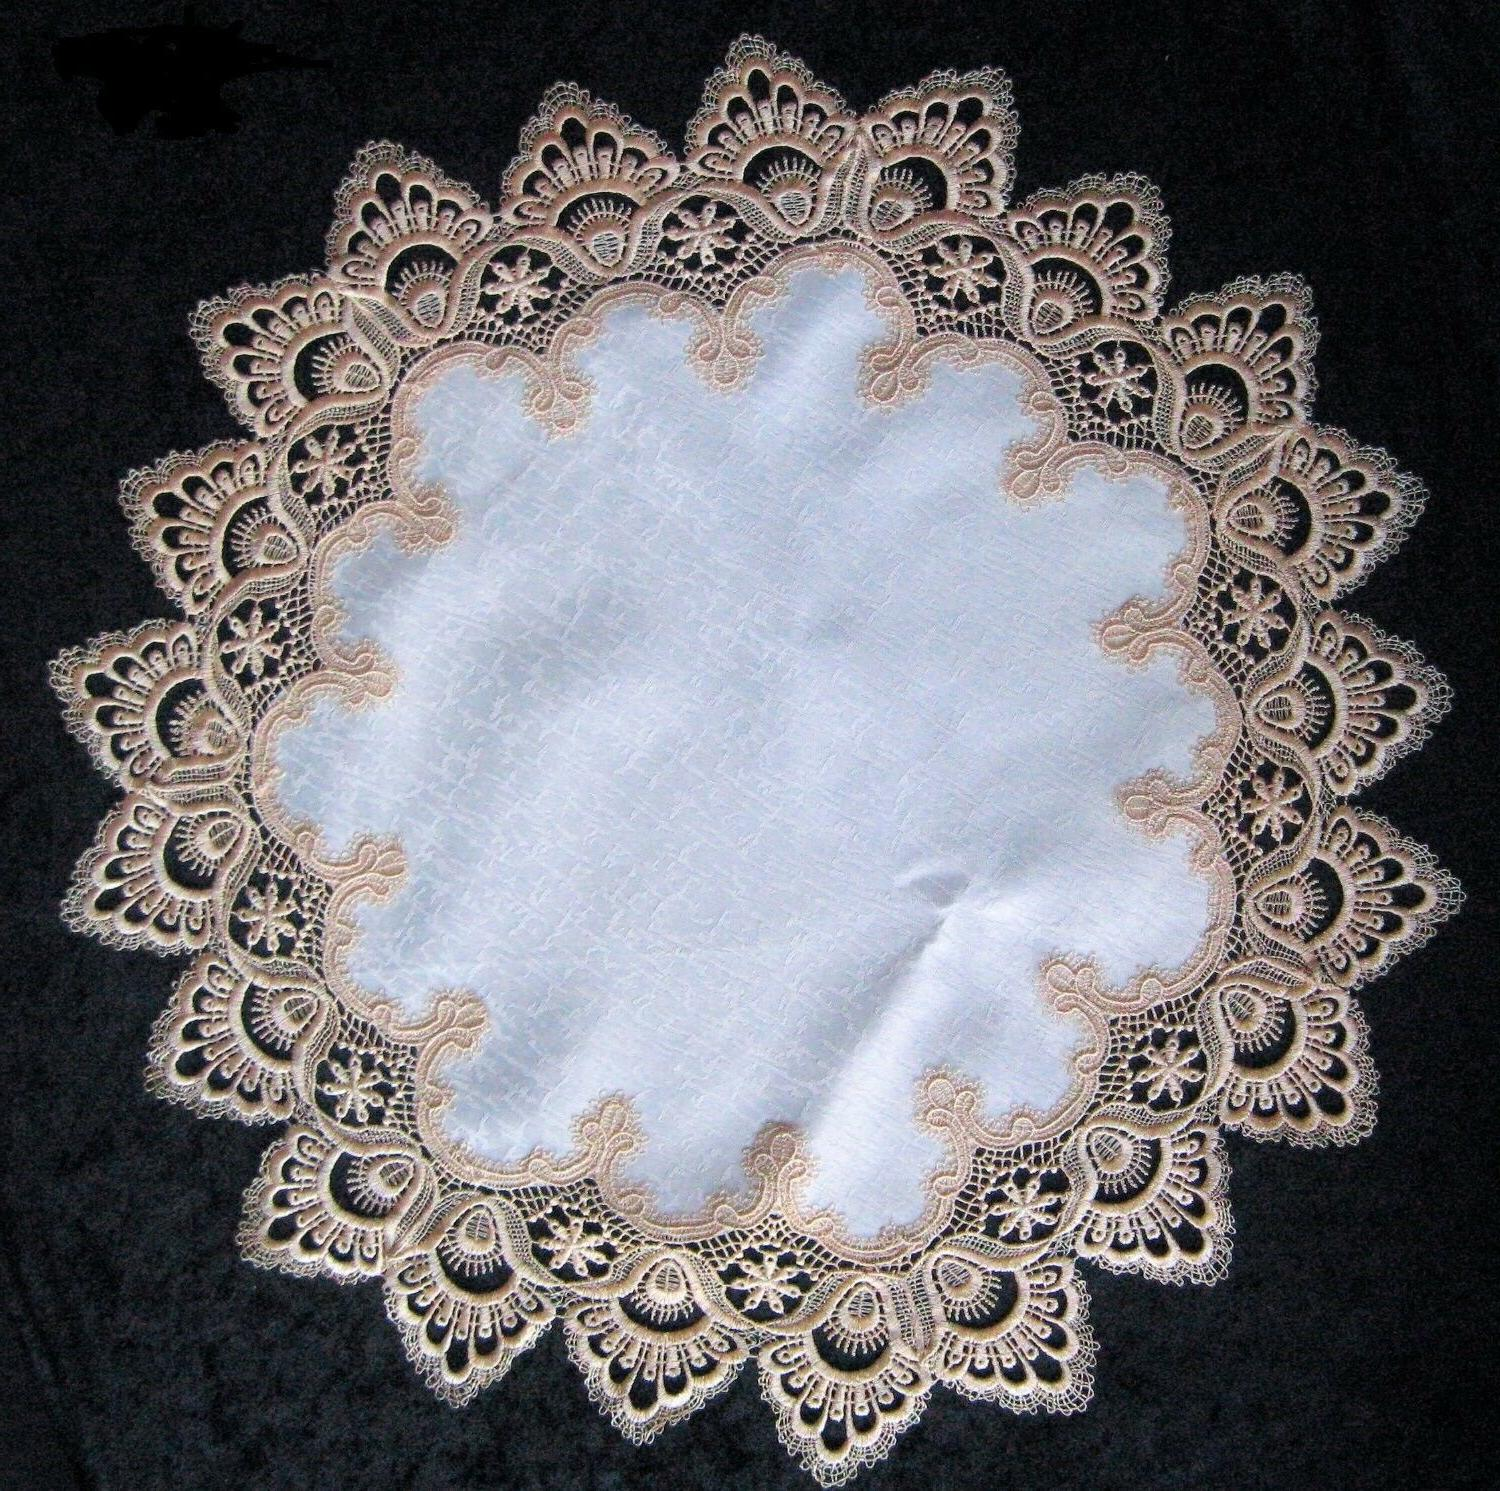 Doily Runner or with Lace Antique Fabric